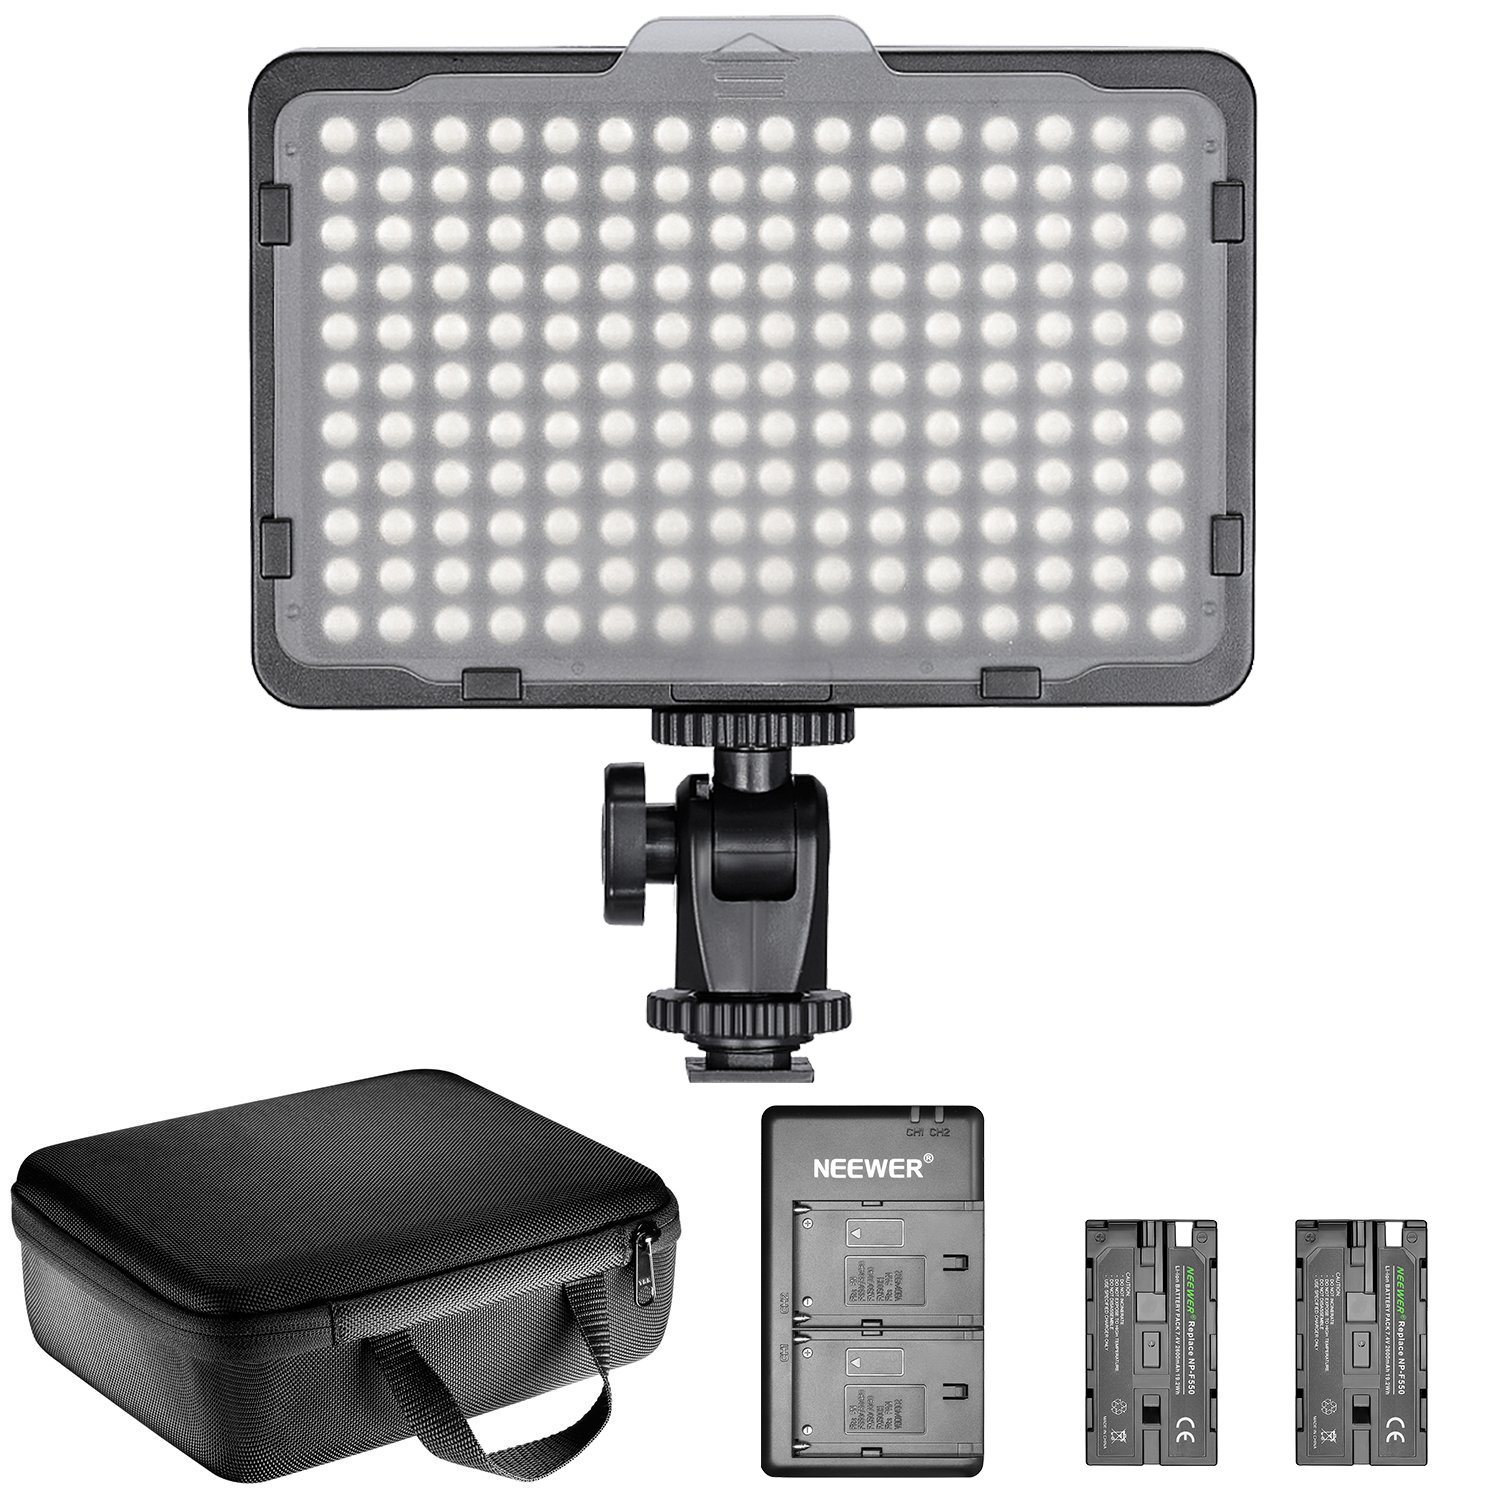 Neewer Dimmable 176 LED Video Light Lighting Kit: 176 LED Panel 3200-5600K, 2 Pieces Rechargeable Li-ion Battery, USB Charger and Portable Durable Case for Canon, Nikon, Pentax, Sony DSLR Cameras by Neewer